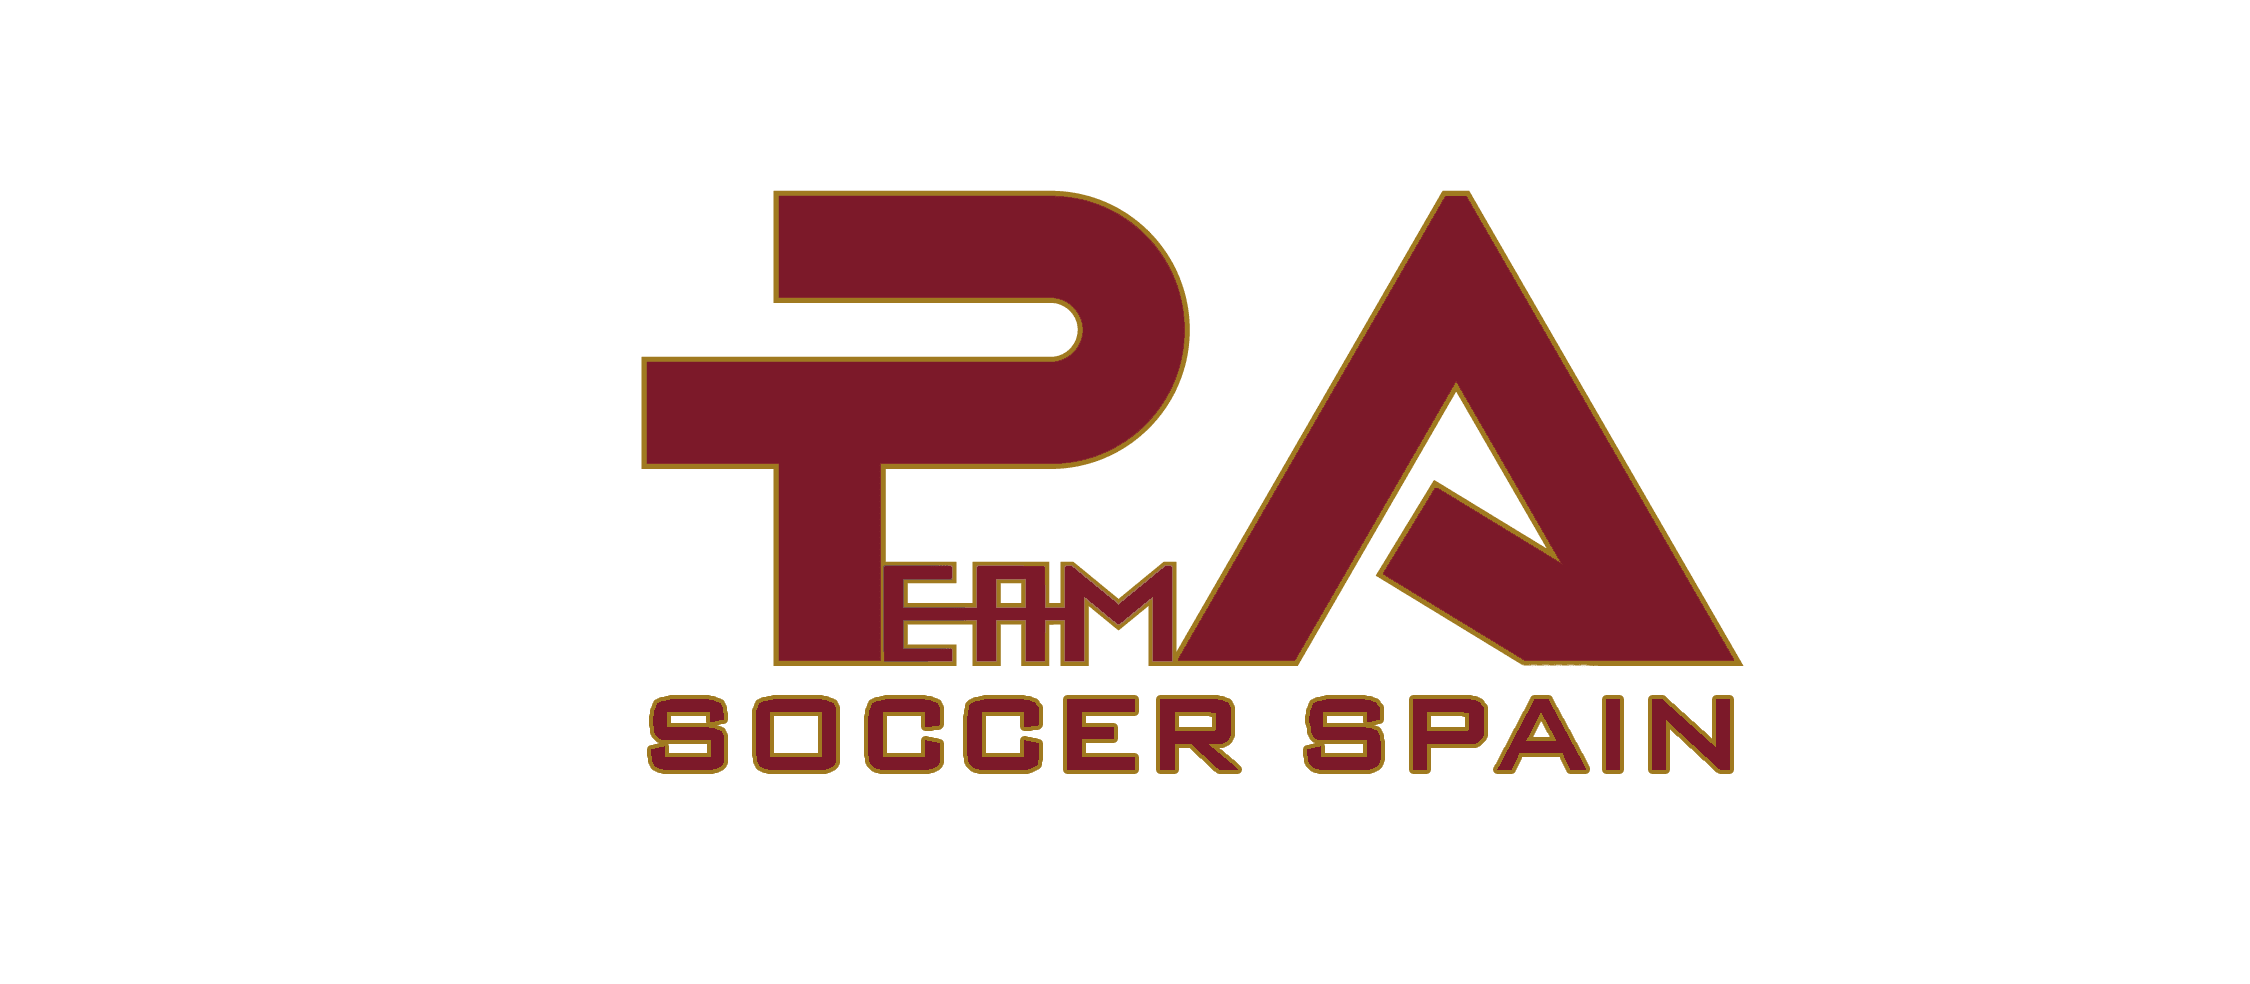 PA Team Soccer Spain